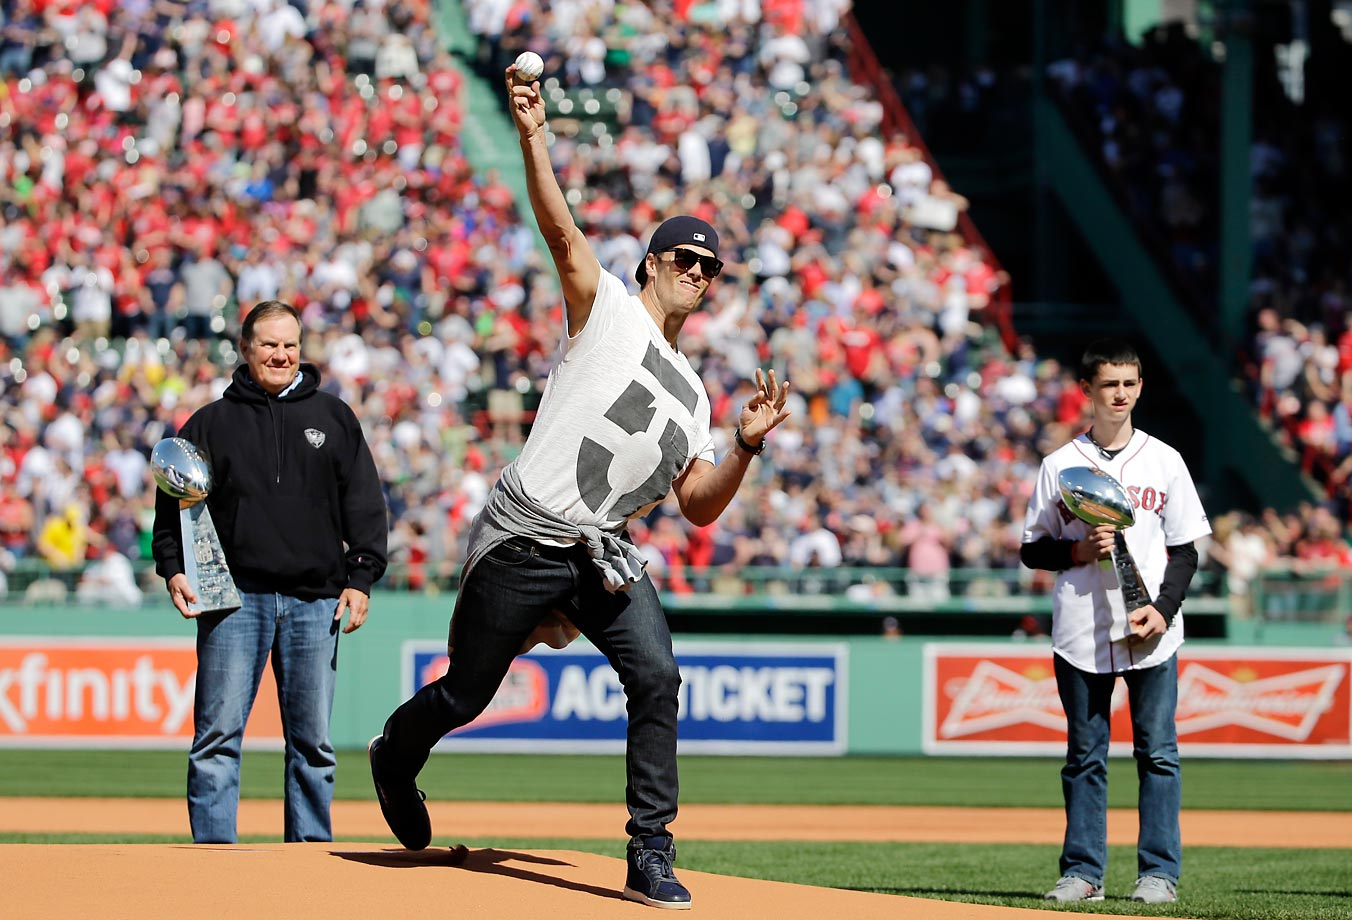 Tom Brady throws out the ceremonial first pitch, with Bill Belichick and Boston Marathon survivor Henry Richard in the background.